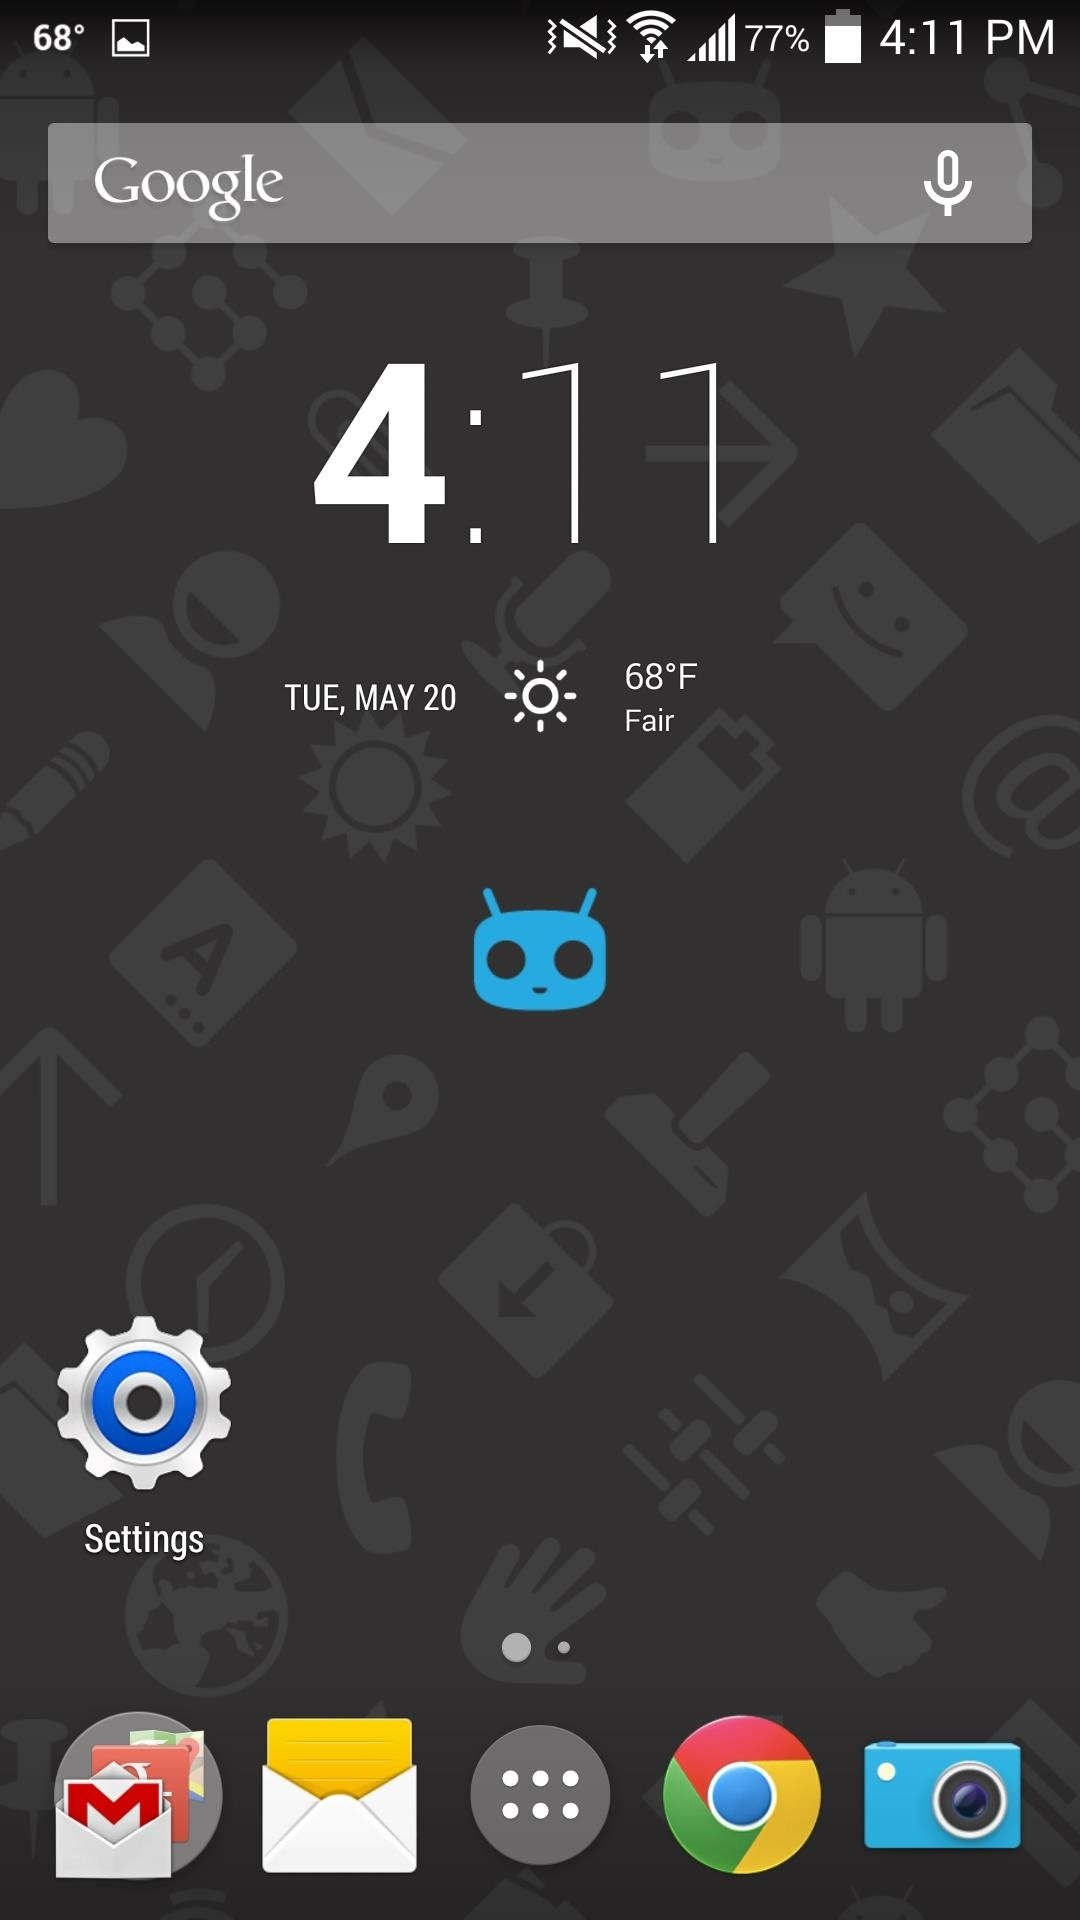 How to Get CyanogenMod Apps on Your Galaxy S4 Without Root